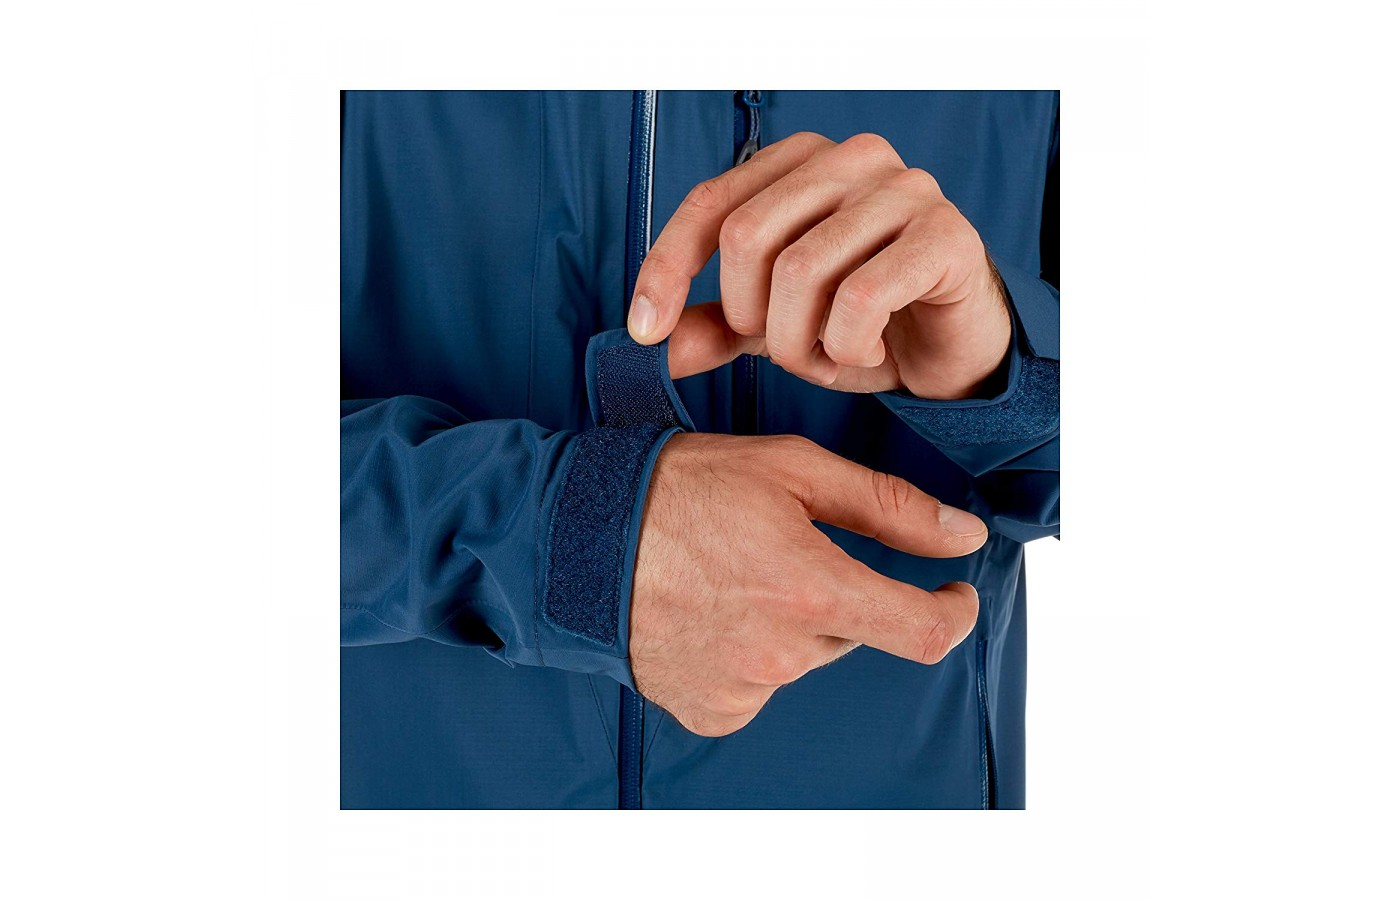 The Velcro sleeve tighteners are also intended to keep wind out of the jacket and thereby further keep you snug and warm.